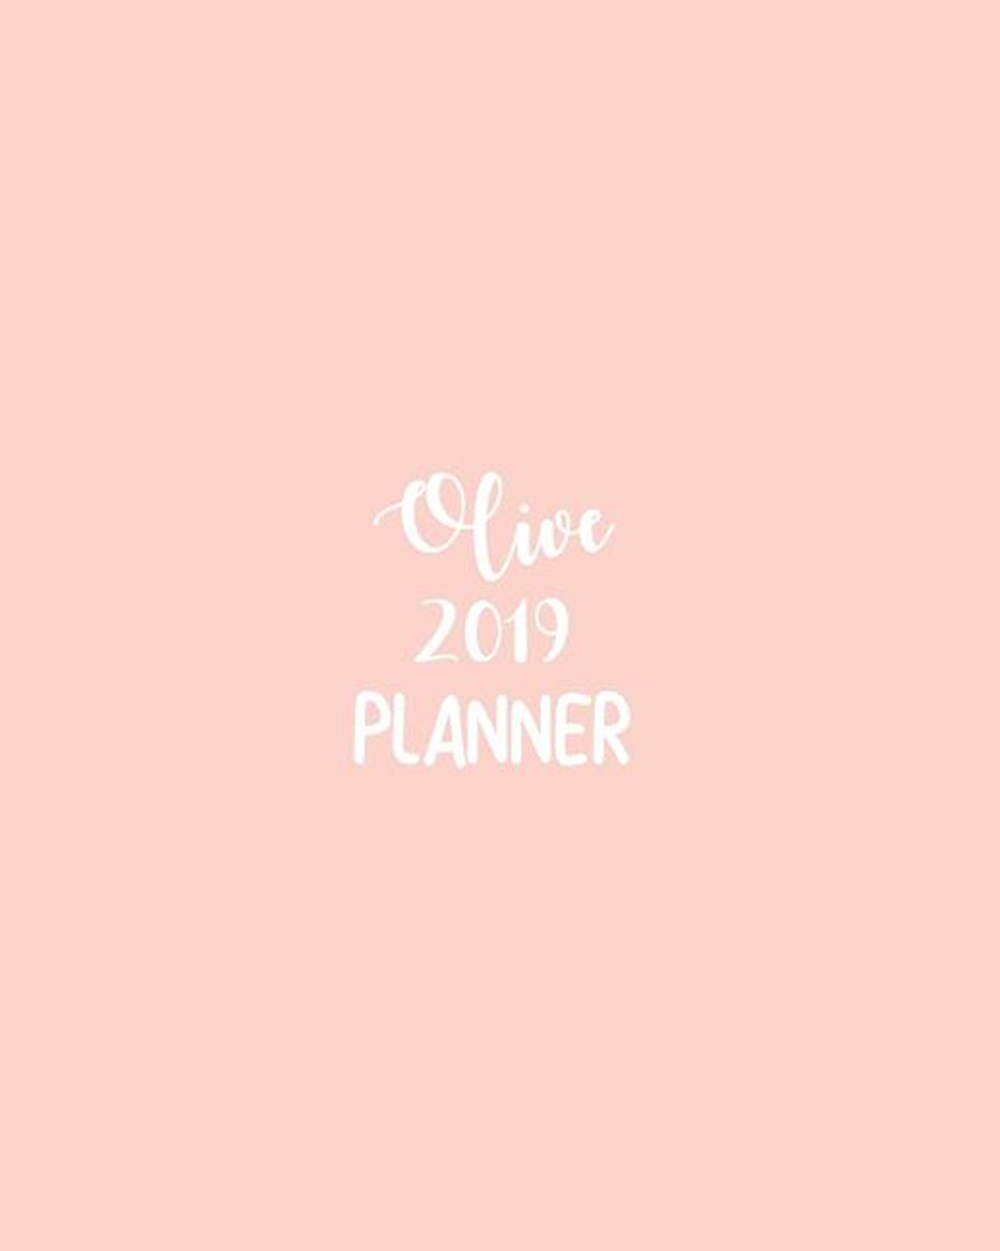 Olive 2019 Planner Calendar with Daily Task Checklist, Organizer, Journal Notebook and Initial Name